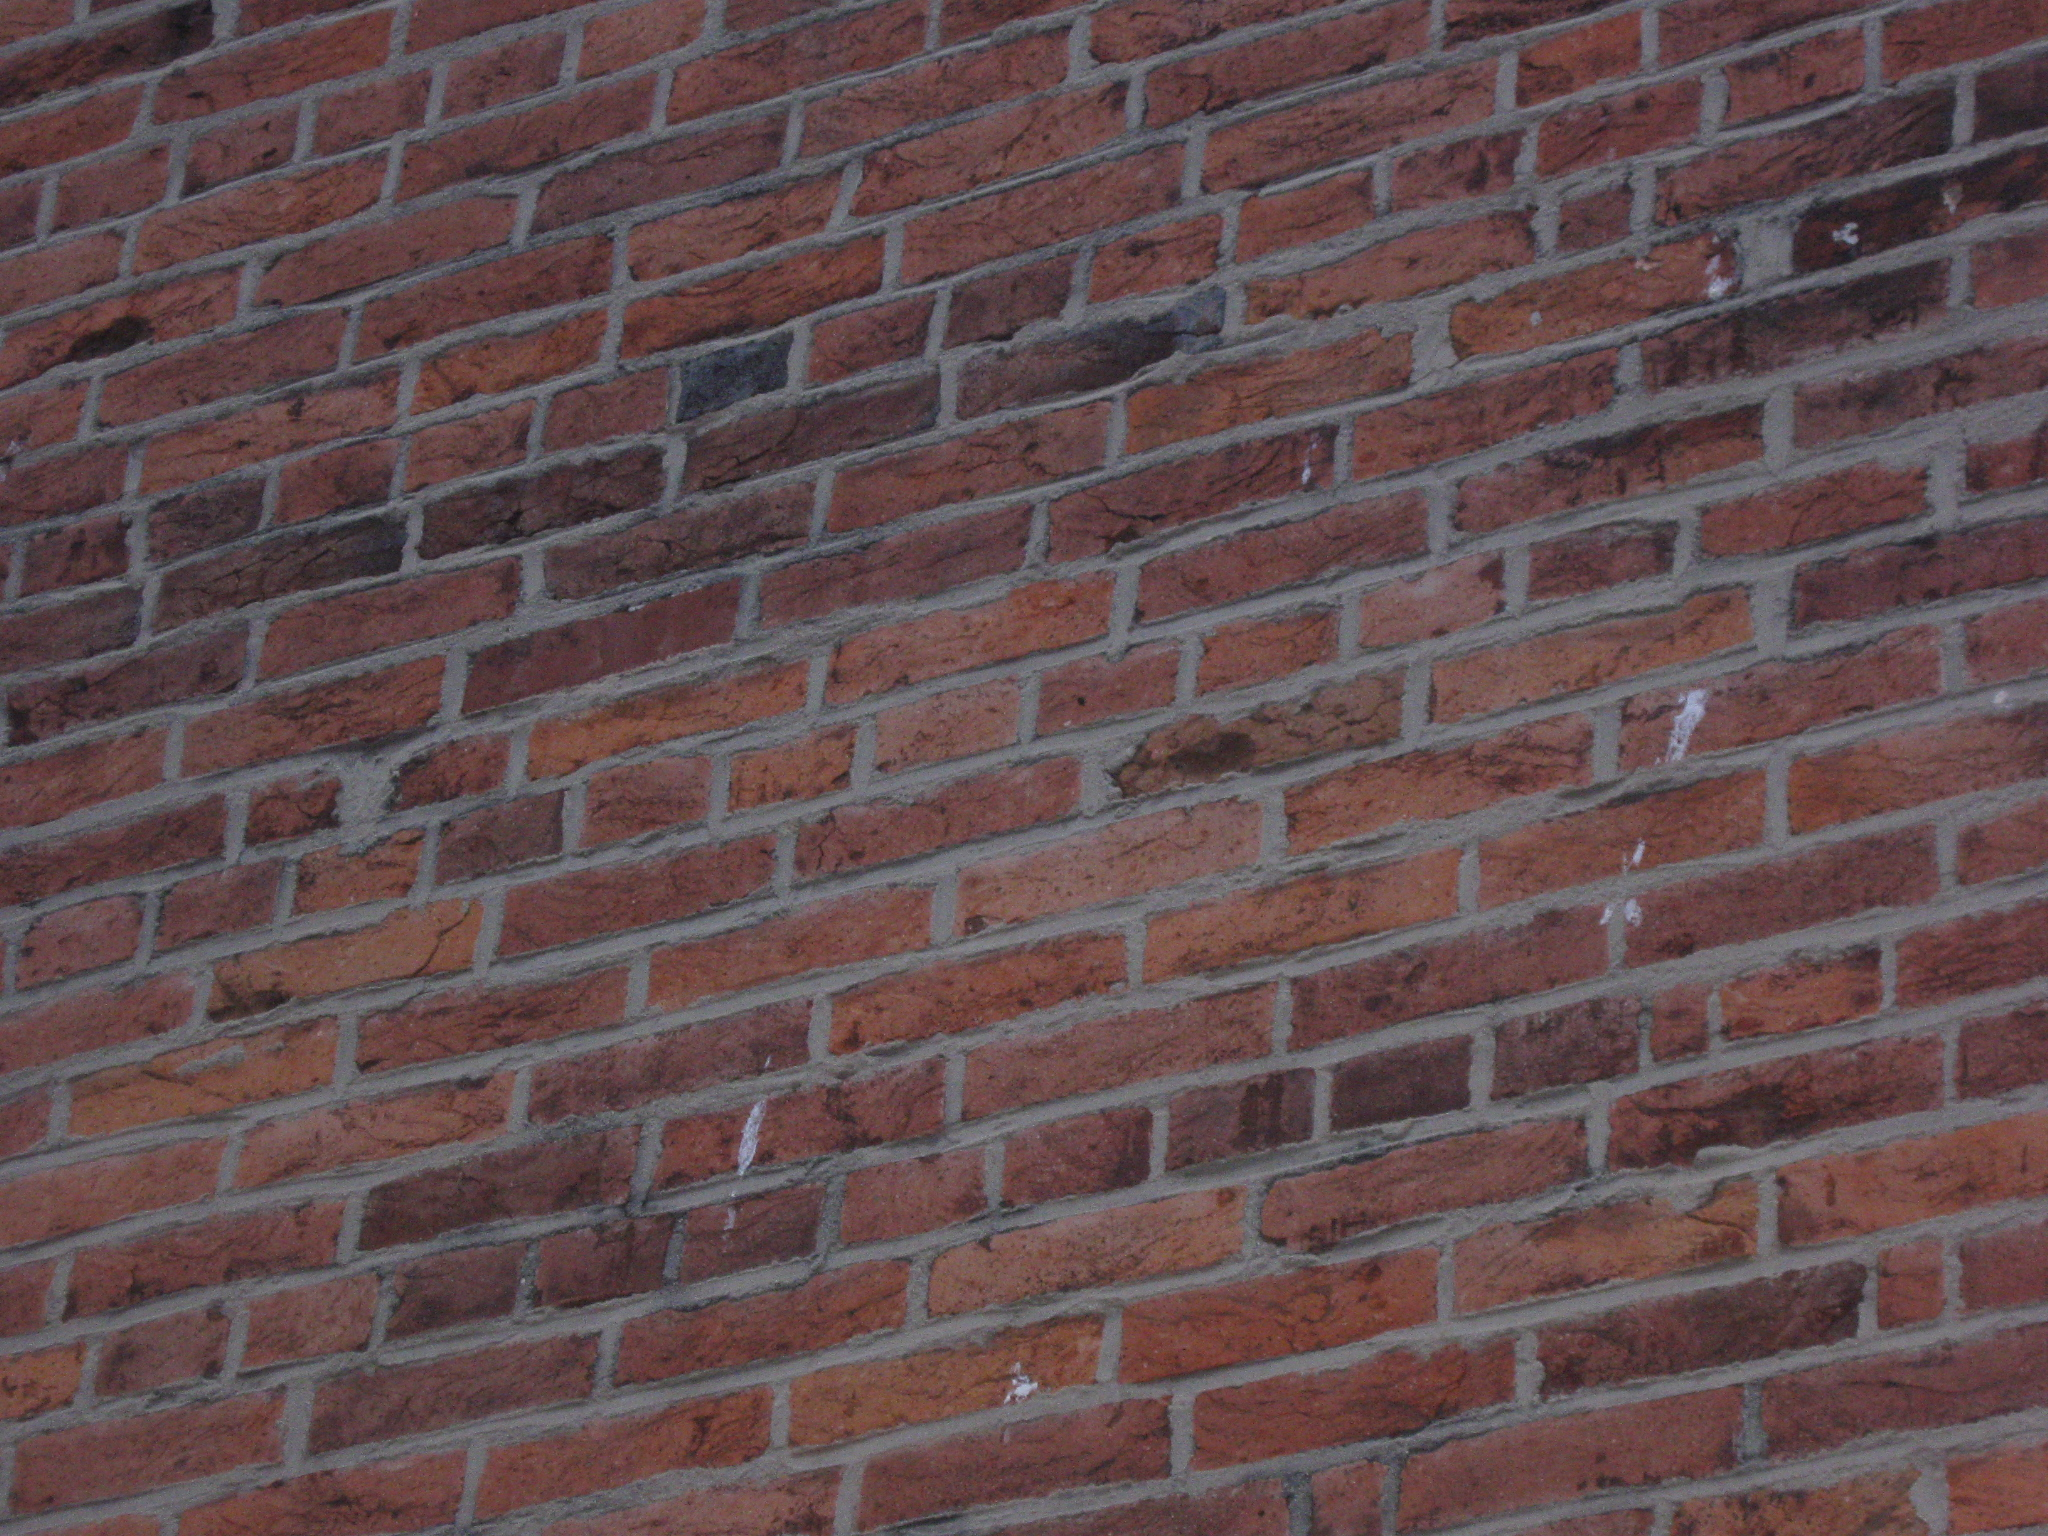 Brick Wall Alley On the south wall of the: galleryhip.com/brick-wall-alley.html